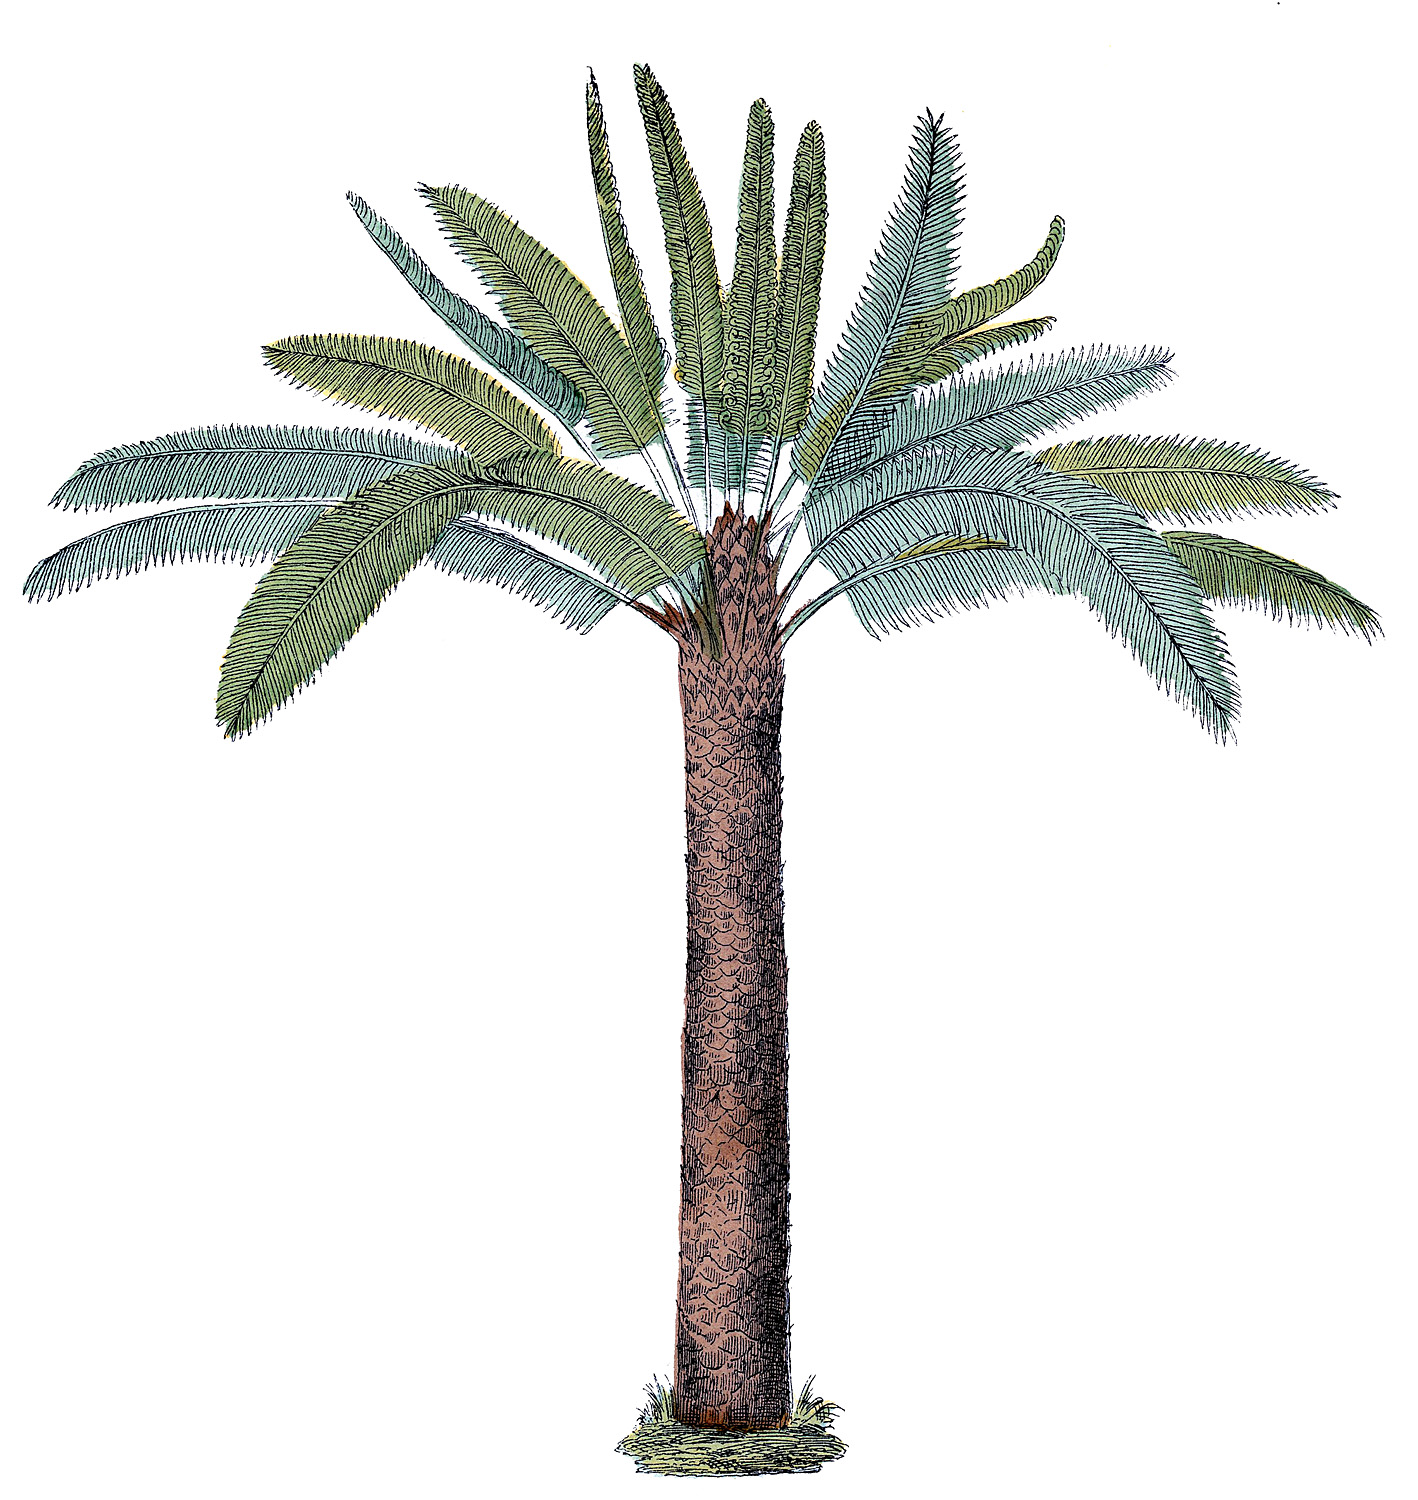 Vintage Palm Tree Graphic  The Graphics Fairy